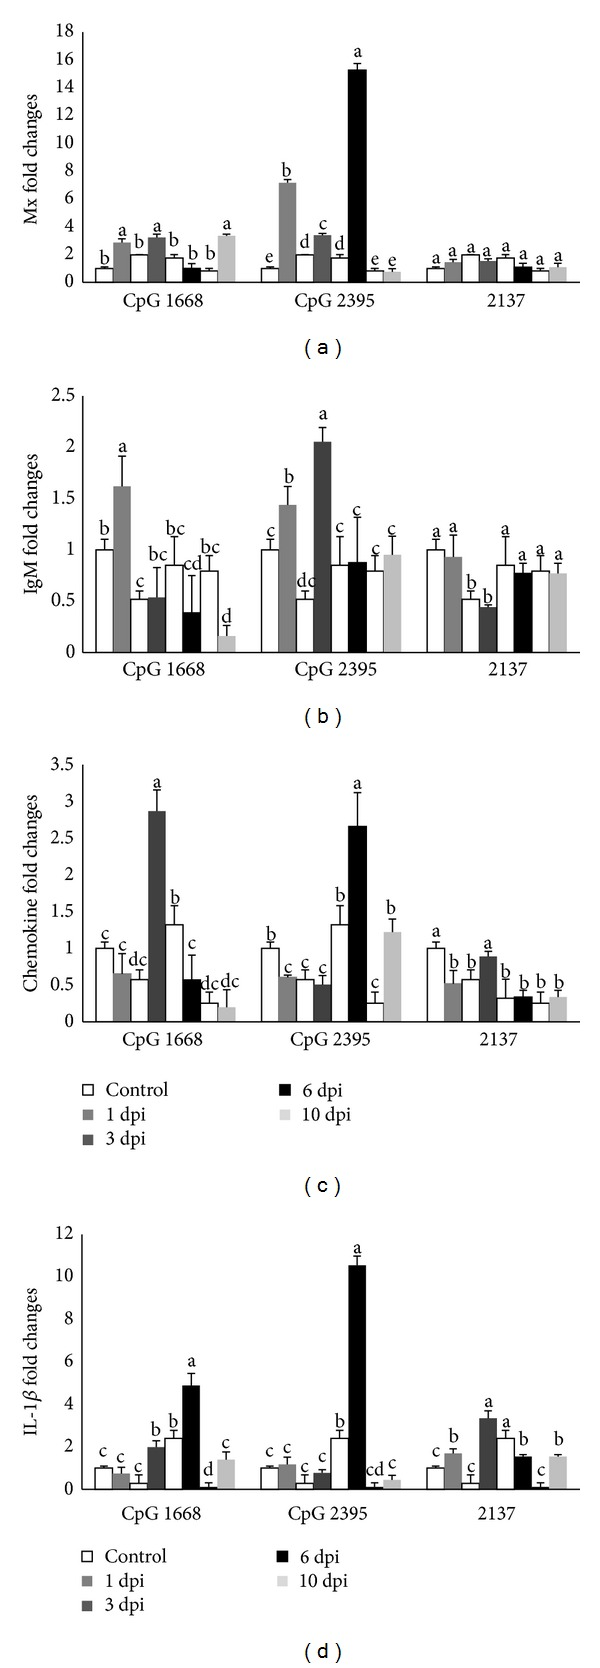 """The relative mRNA expressions of Mx (a); IgM (b); CC (c); and interleukin 1- β (d) in cobia intestine after stimulating with different <t>CpG</t> <t>ODNs</t> (1668, 2395) and ODN 2137 as control measured by quantitative real-tie PCR at 1, 3, 6, and 10 days after stimulation. The expression values are represented as """"fold change"""" and compared to the noninjected control samples and β -actin was used as a reference gene. The results are presented as the mean ± SD ( n = 2) and mean values with different letters are significantly different ( P ≤ 0.05)."""